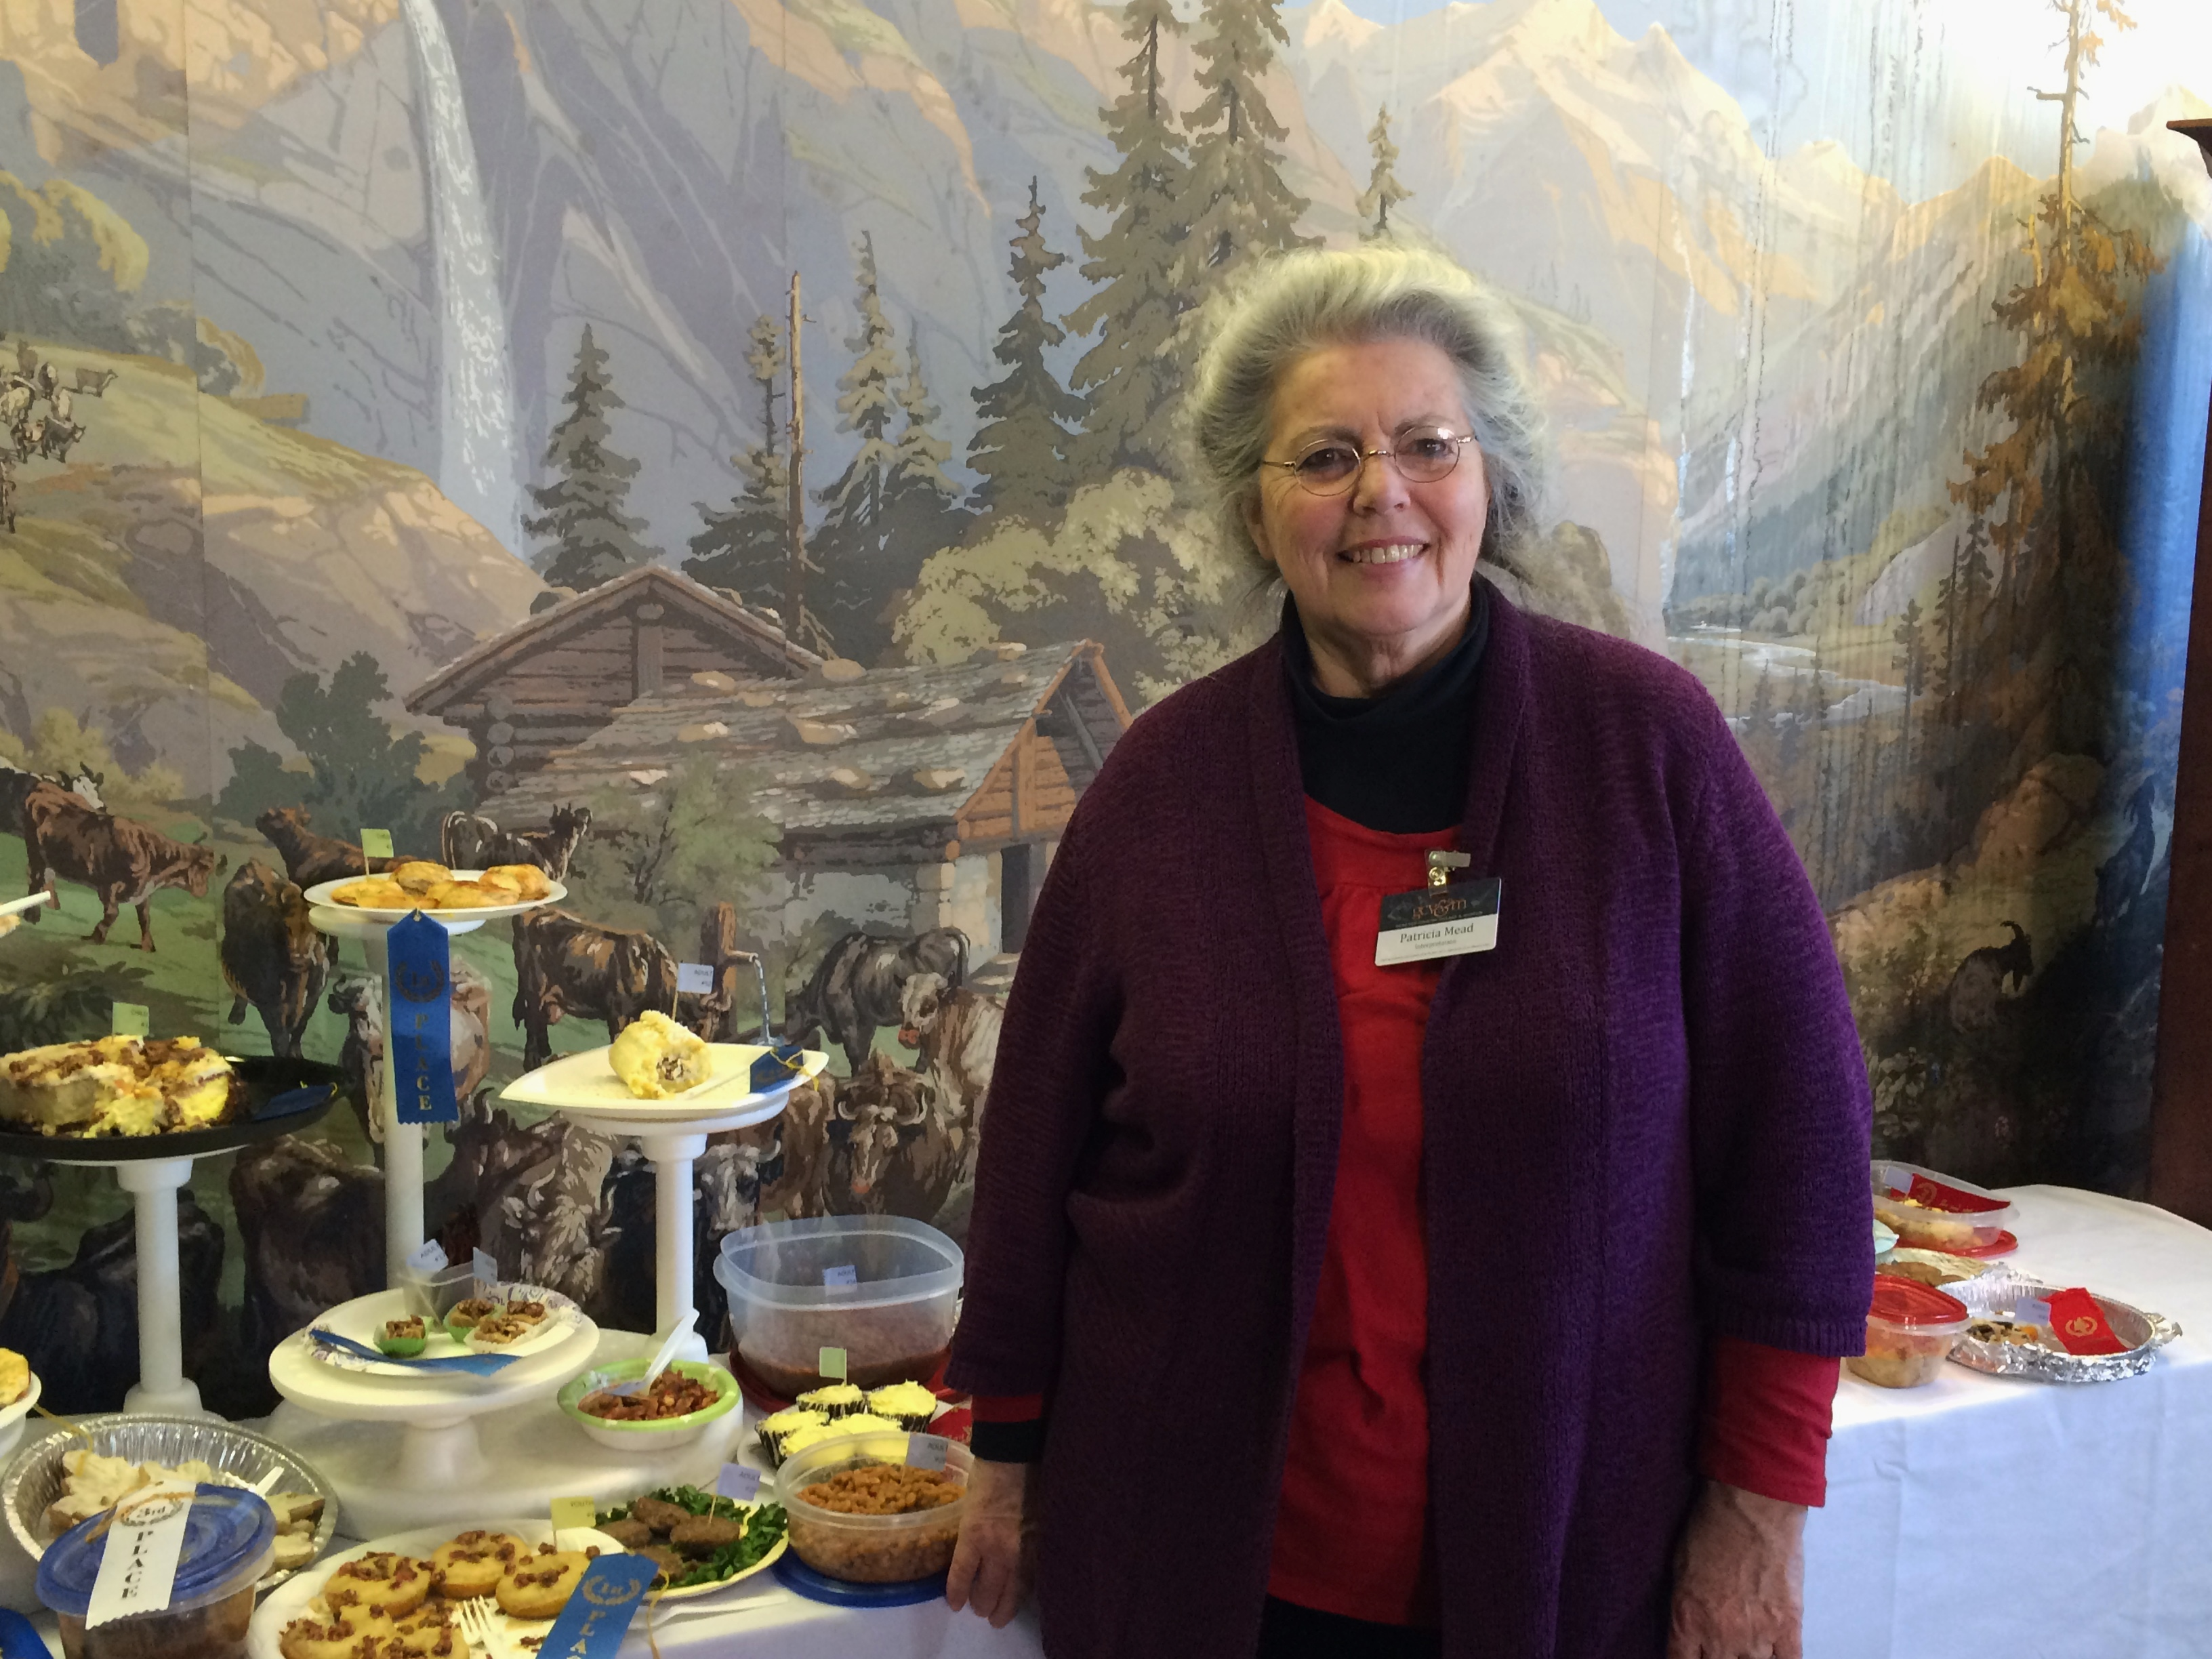 Meet Pat Mead who heads the Food Ways program at the village!